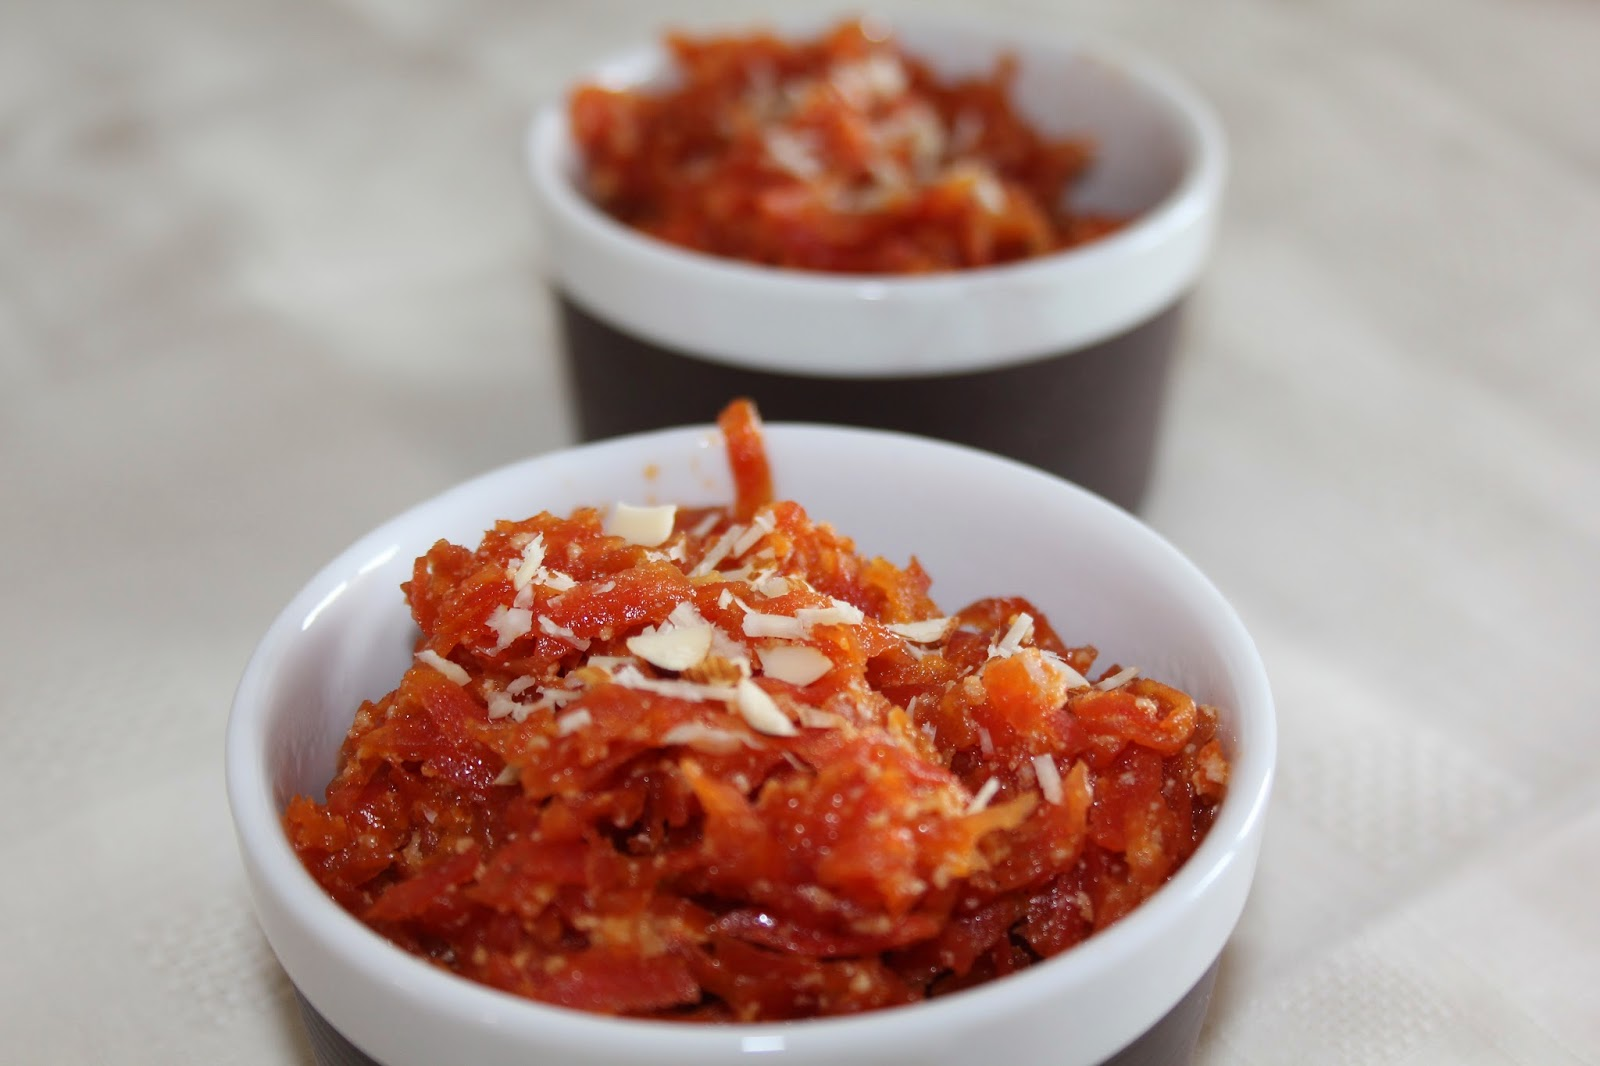 ... Welcome to Soni's Kitchen: Gajar halwa (Carrot Halwa) with milk powder